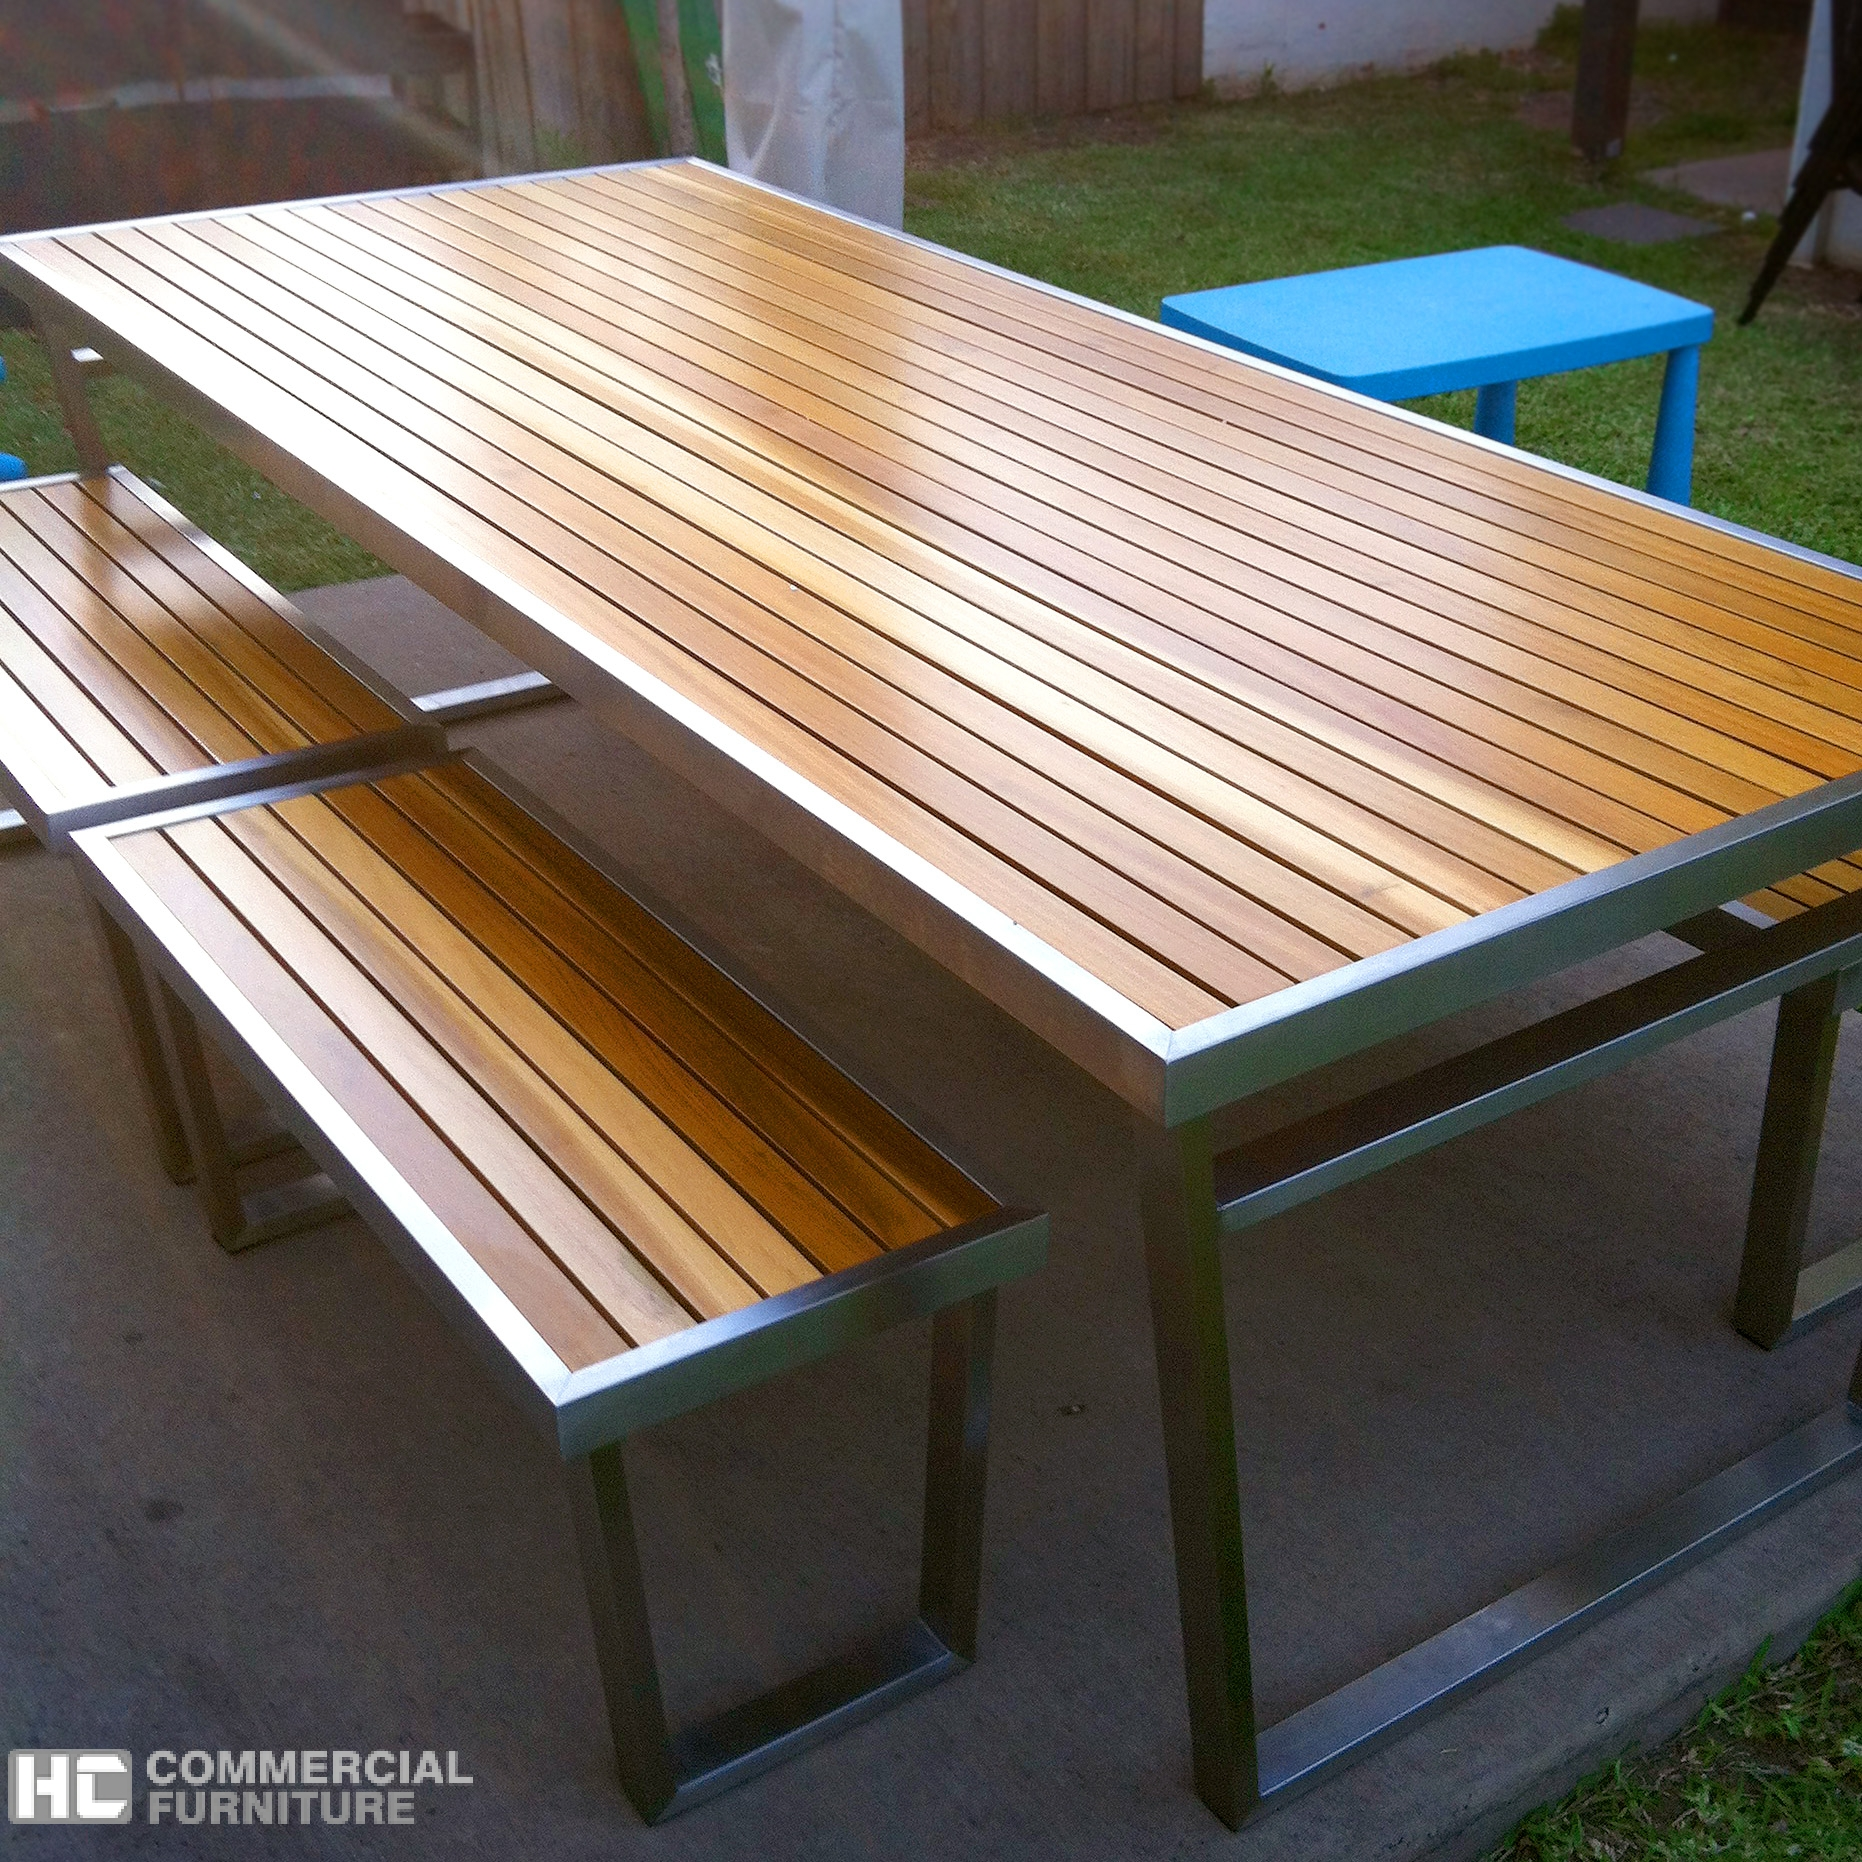 Teakwood Stainless Steel Table Set Hccf Commercial Furniture